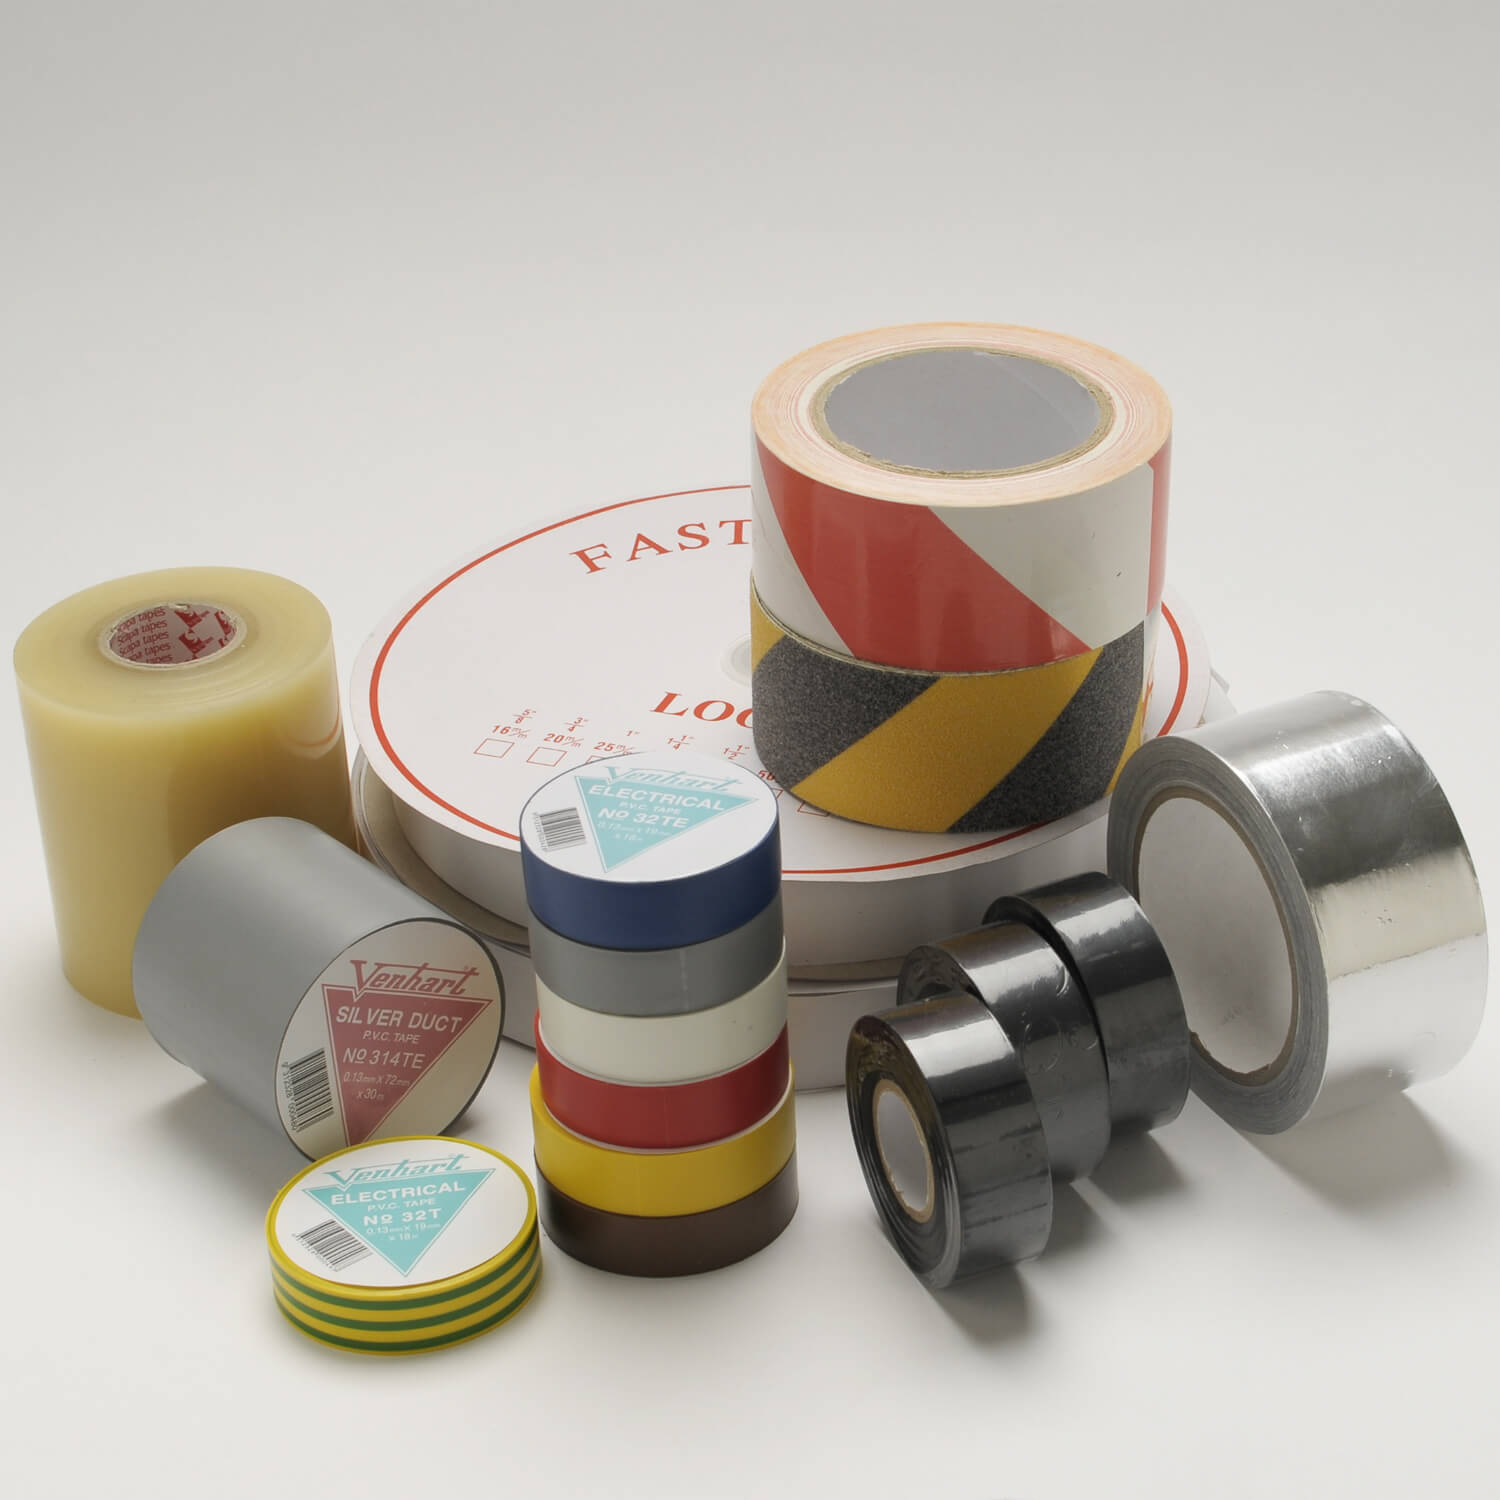 Electrical & Duct Tape